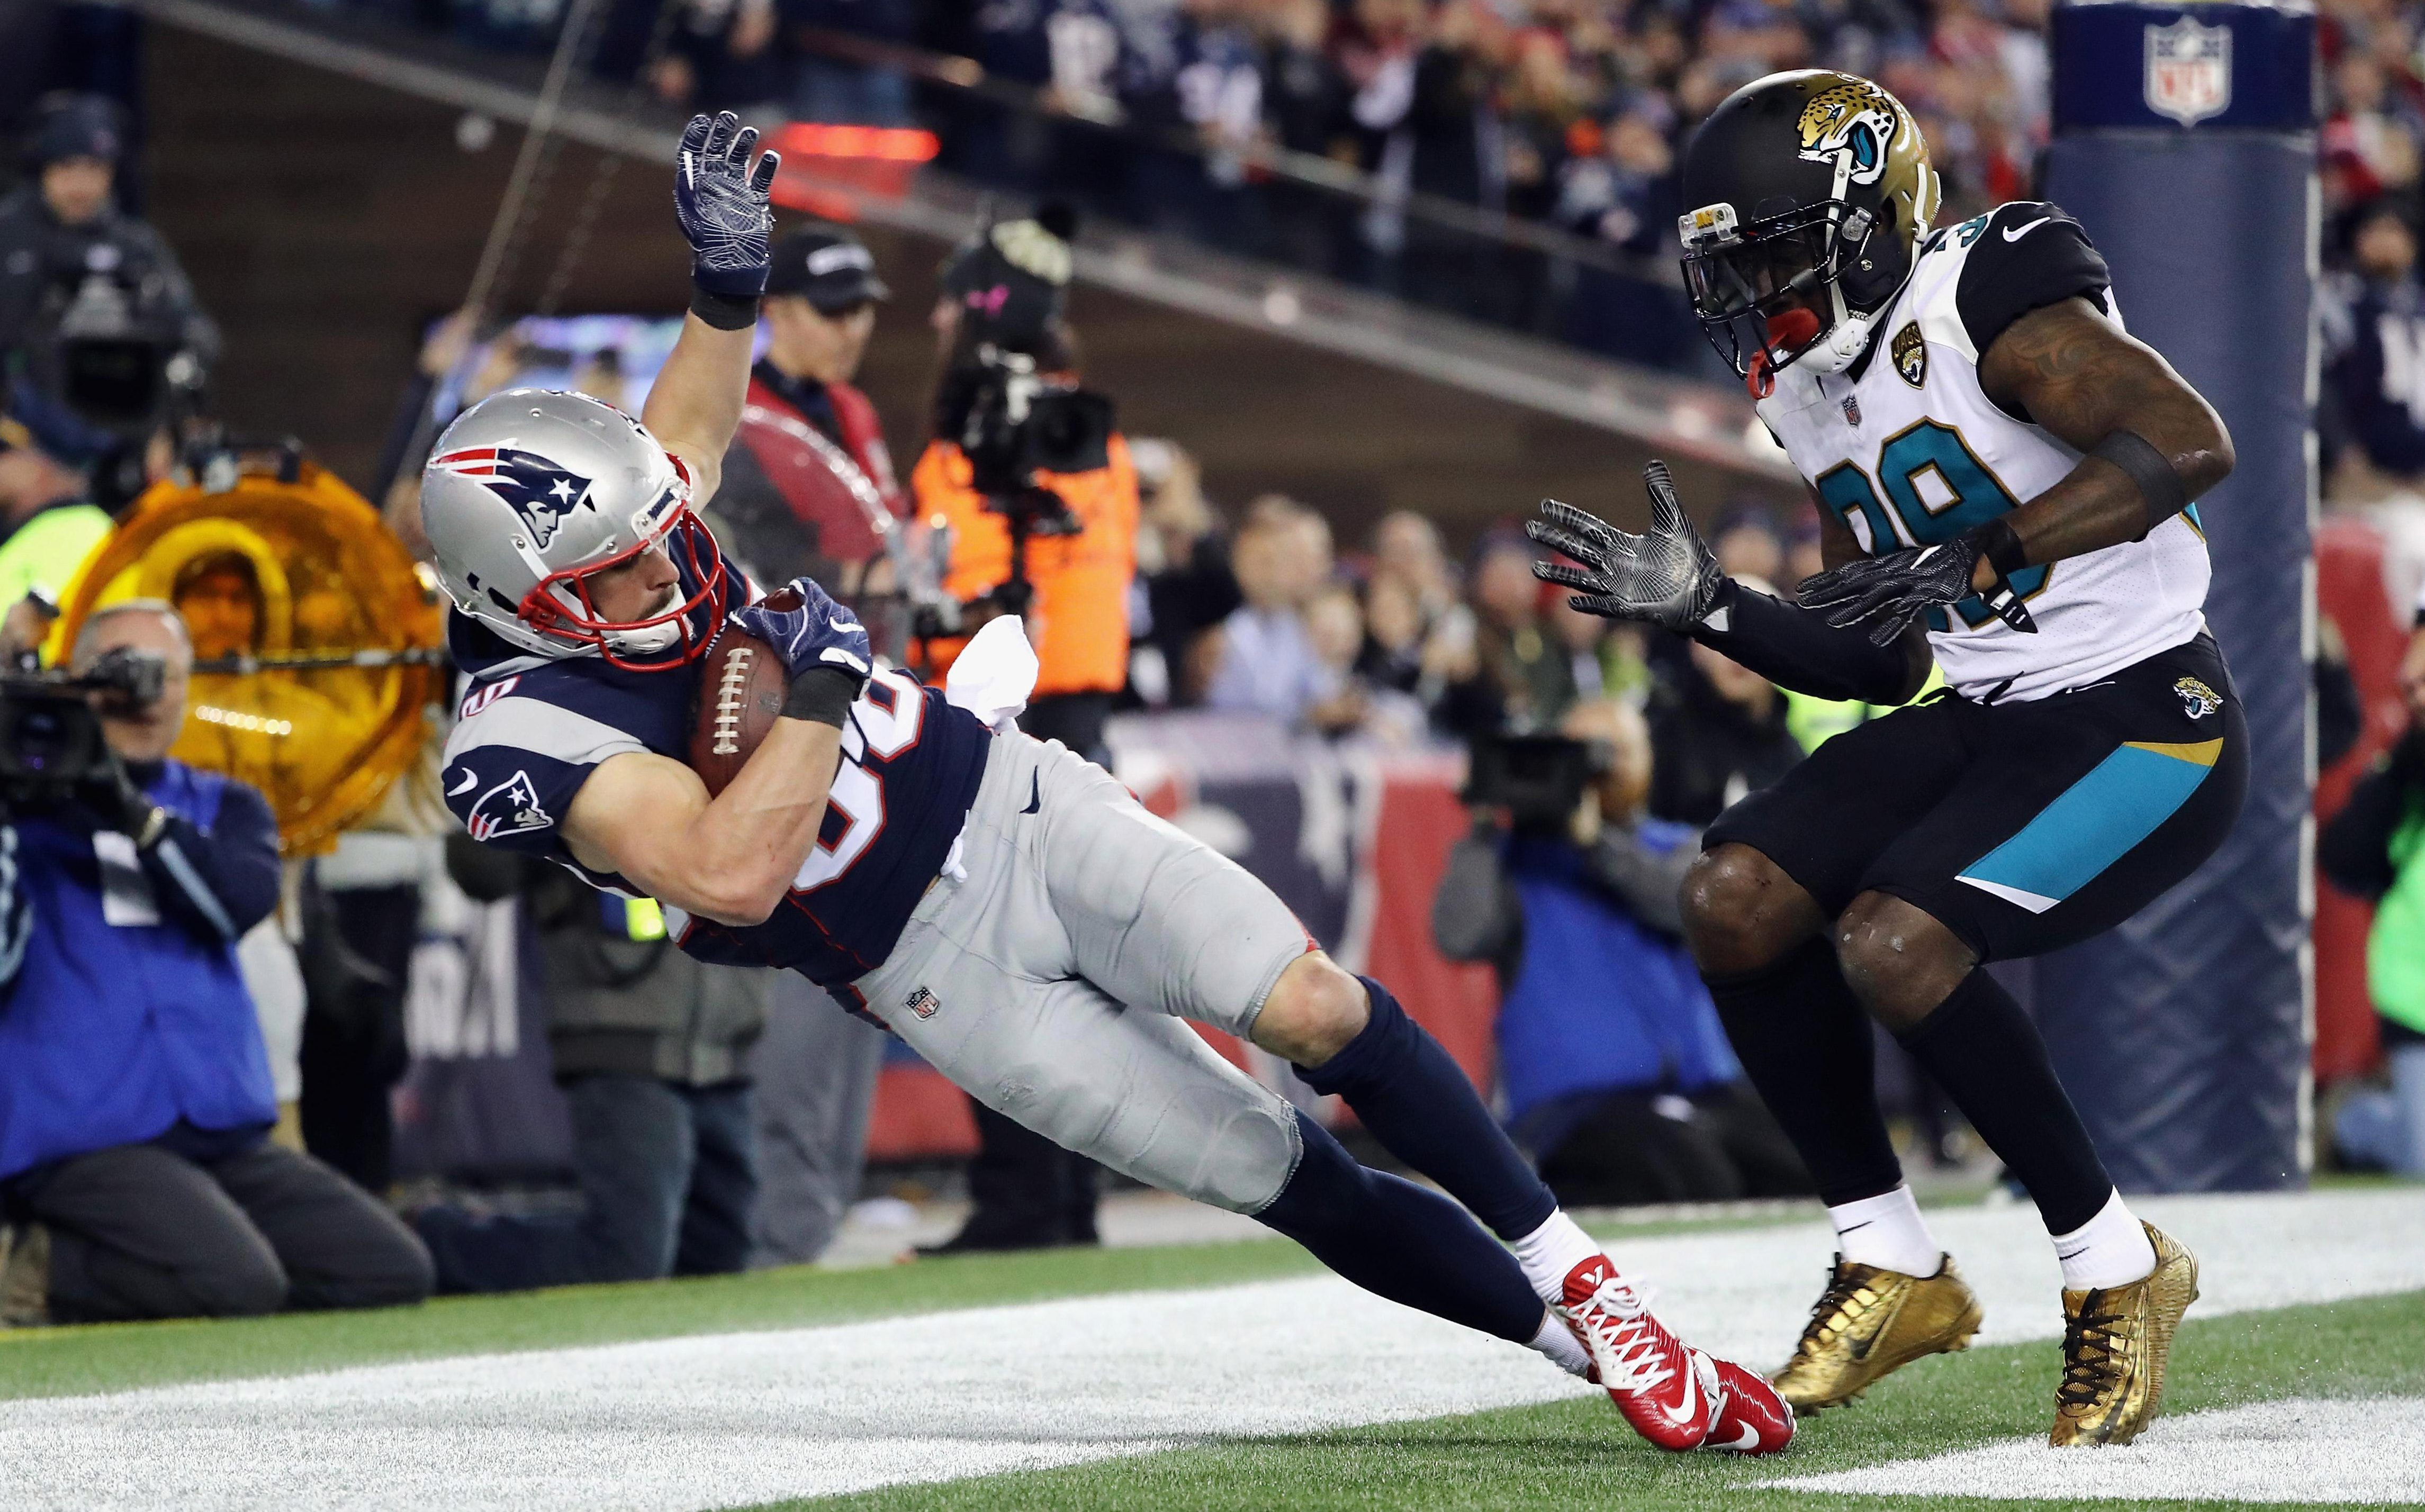 Danny Amendola caught the game-winning touchdown with less than three minutes to play at Gillette Stadium